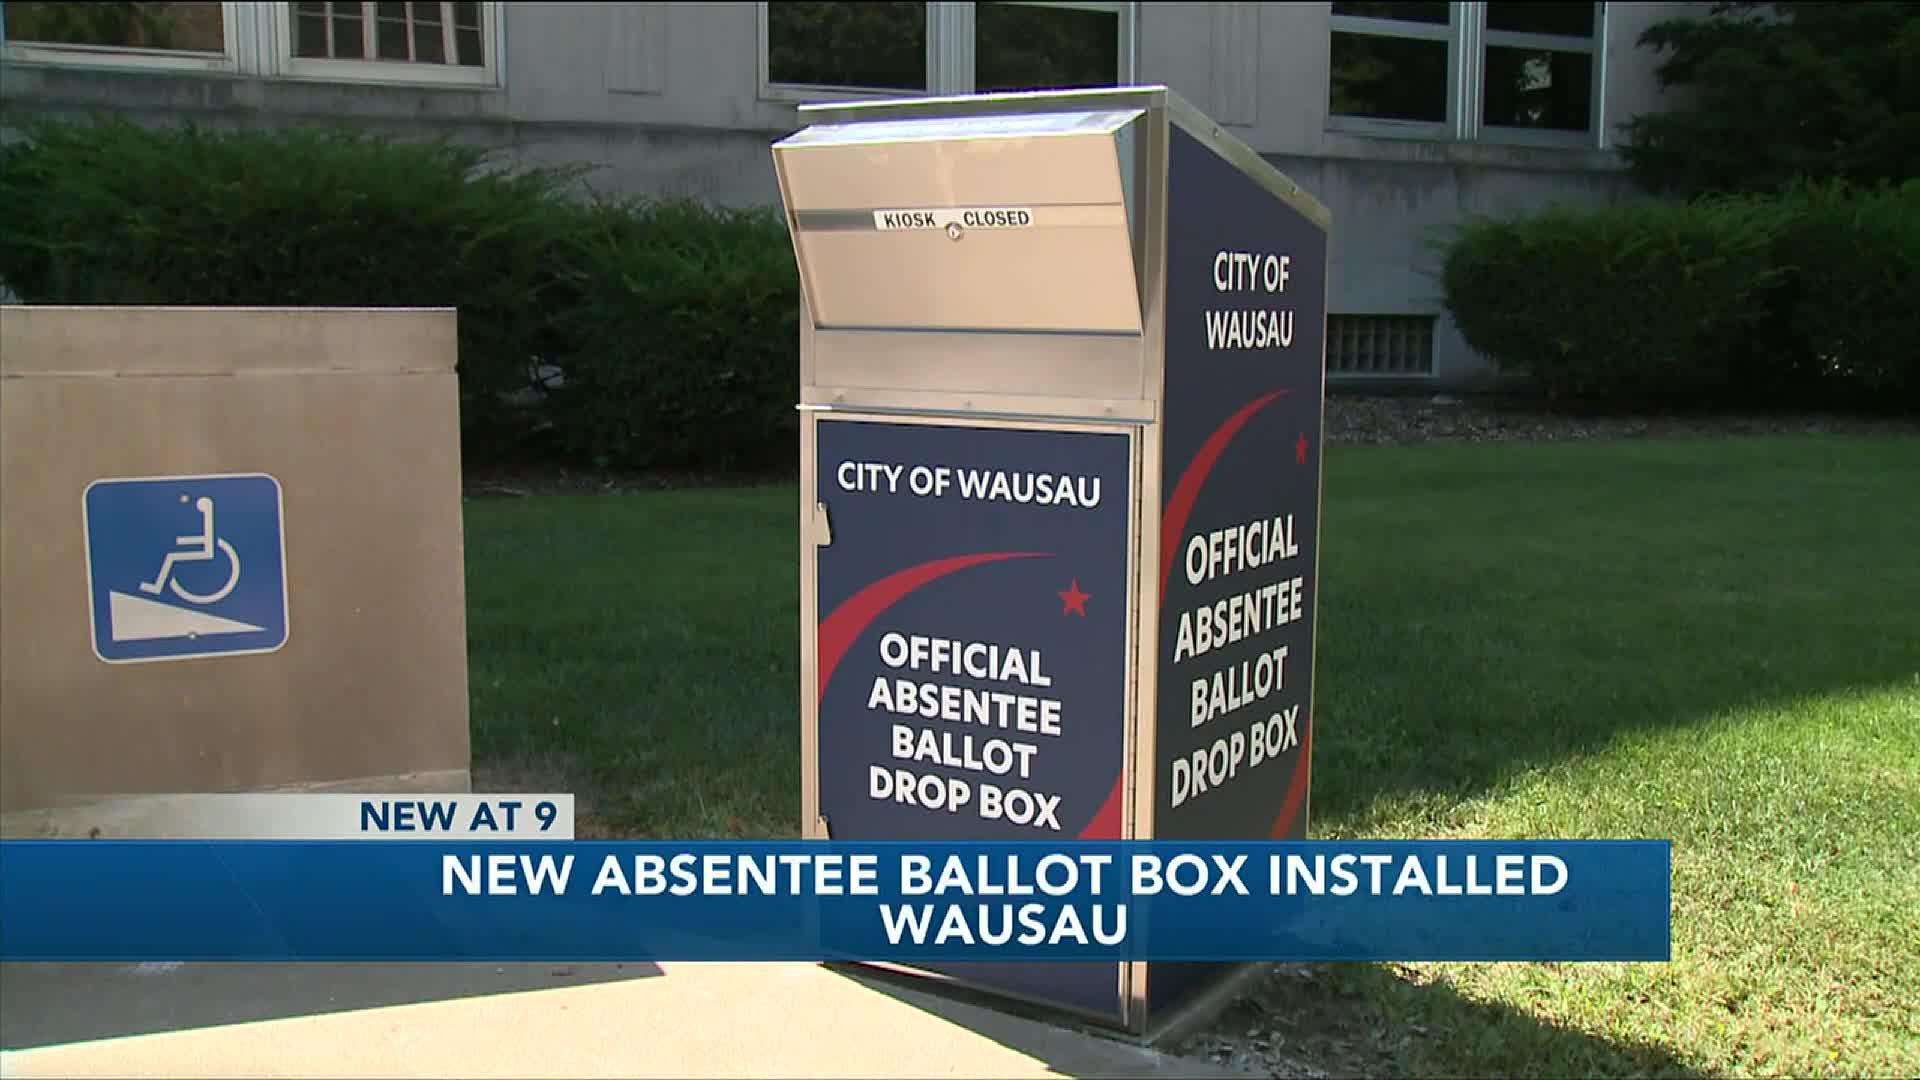 Officials Hope New Ballot Drop Box Will Eliminate Confusion As Absentee Voting Trend Grows